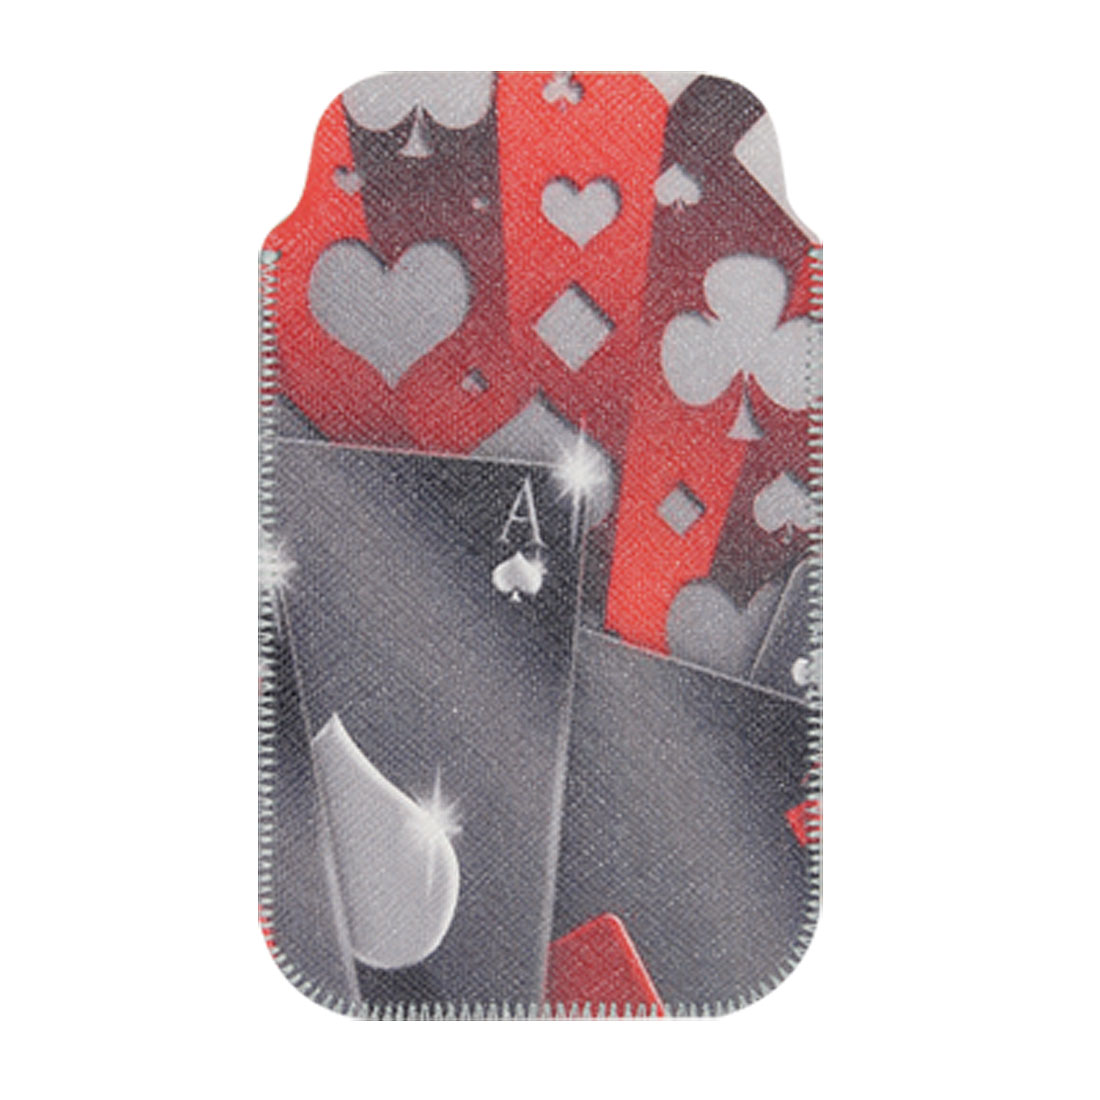 Spade Heart Print Nonslip Faux Leather Sleeve for iPhone 3G 3GS